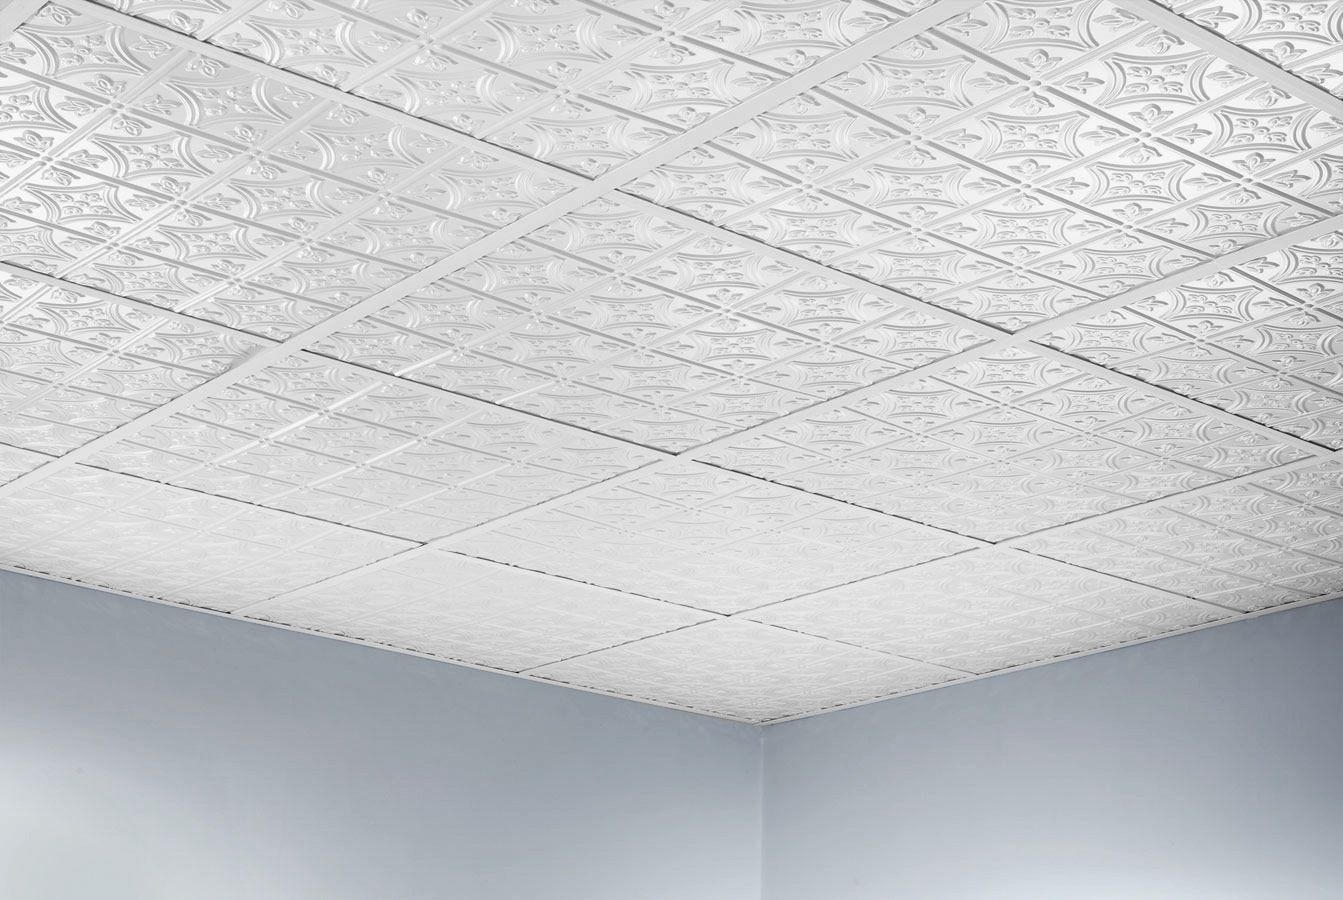 Armstrong Ceiling Tiles 22 704a Httpcreativechairsandtables